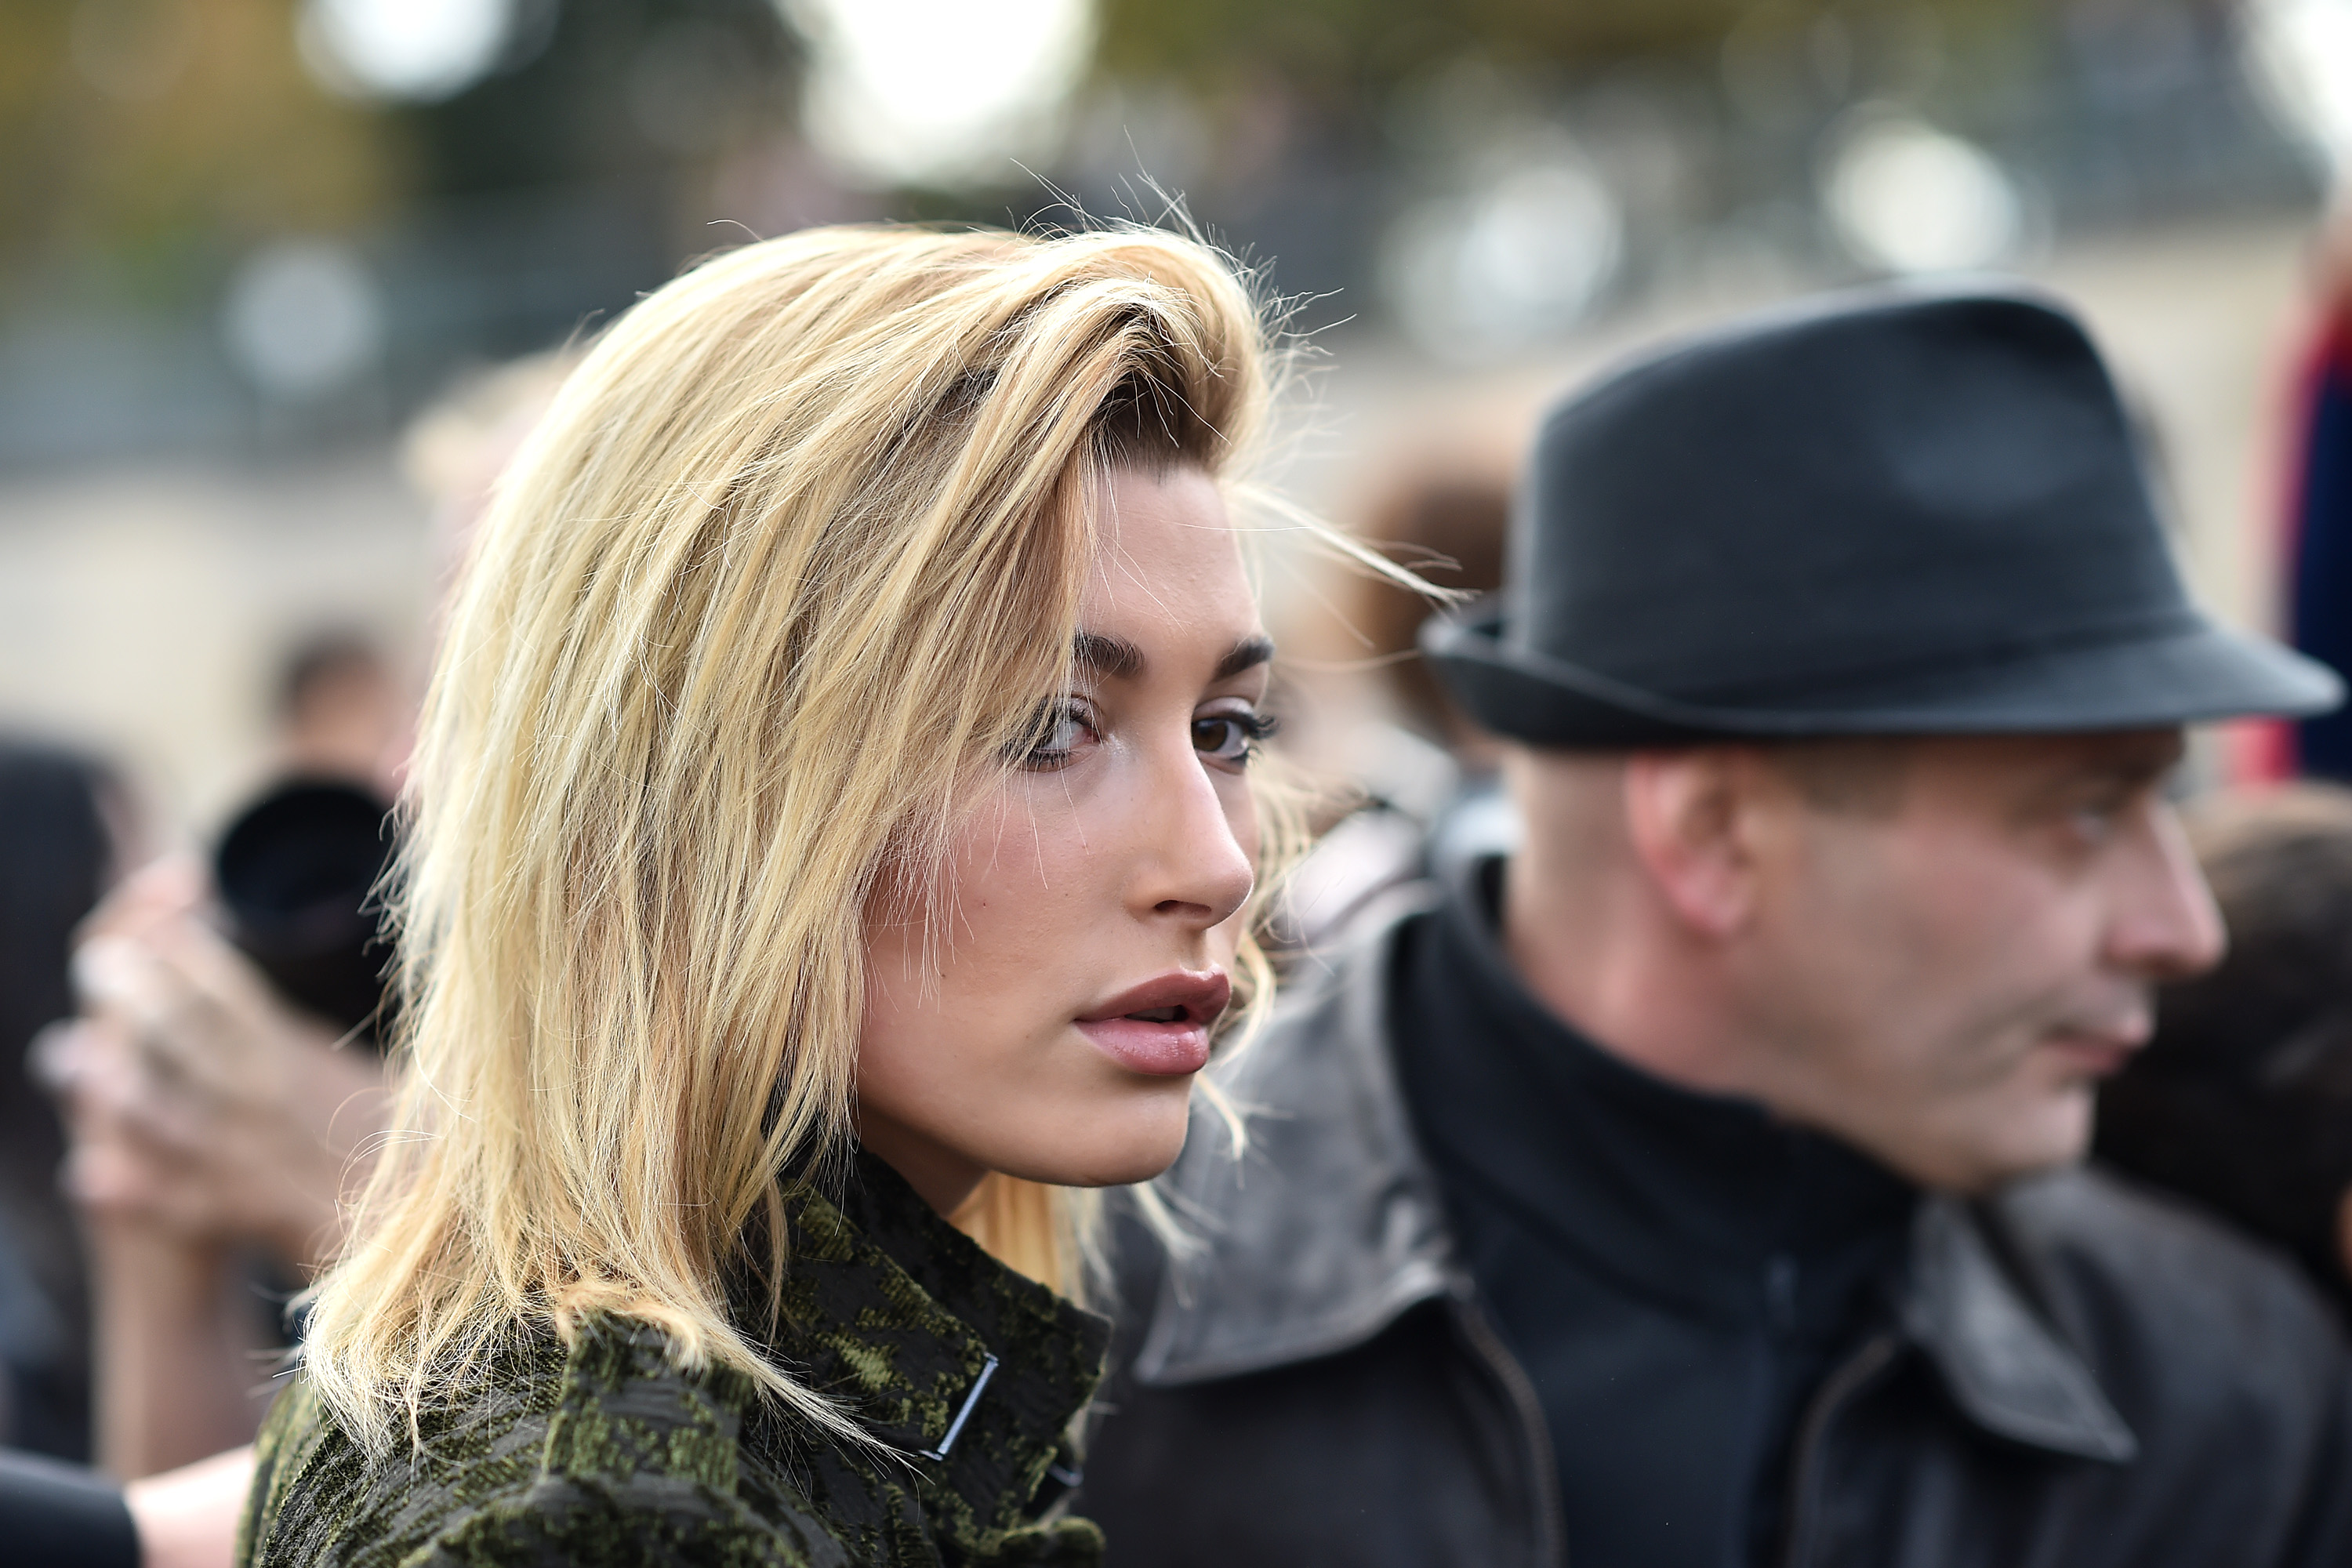 Hailey Baldwin gets new hair and glasses, looks sharp as hell